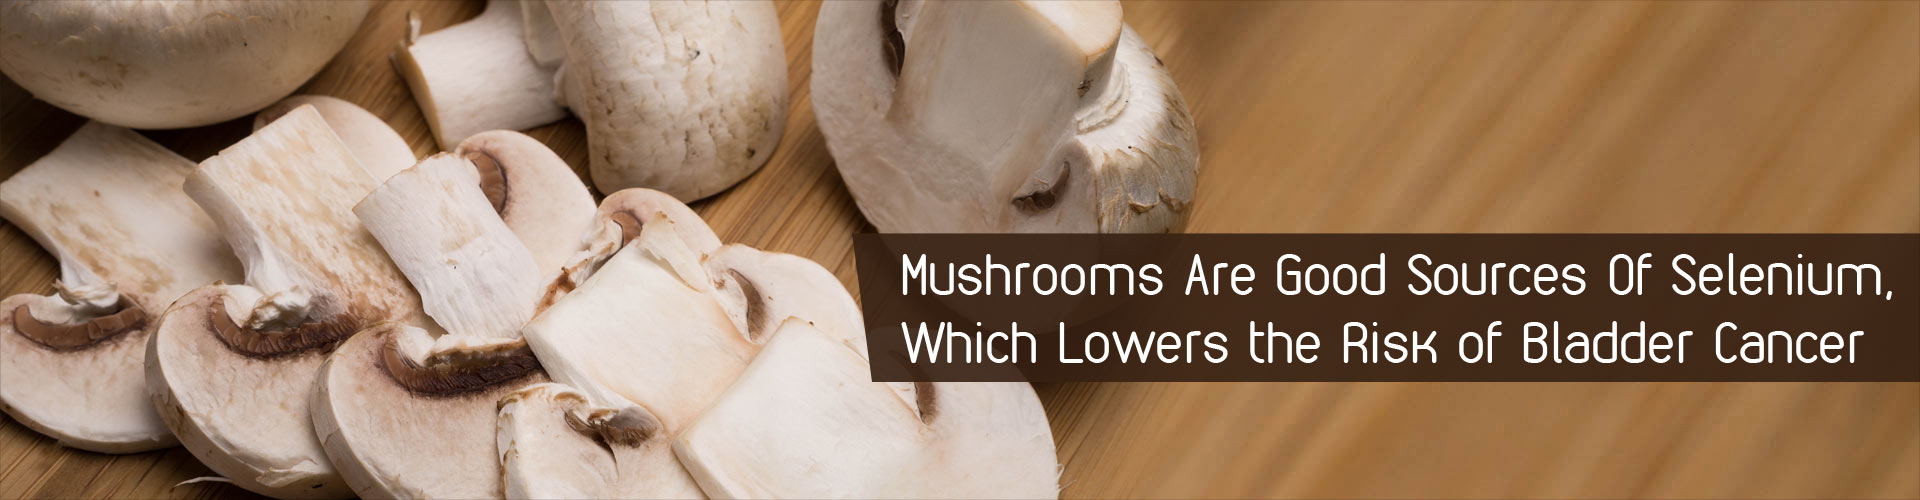 Mushroom Types - Edible and Poisonous